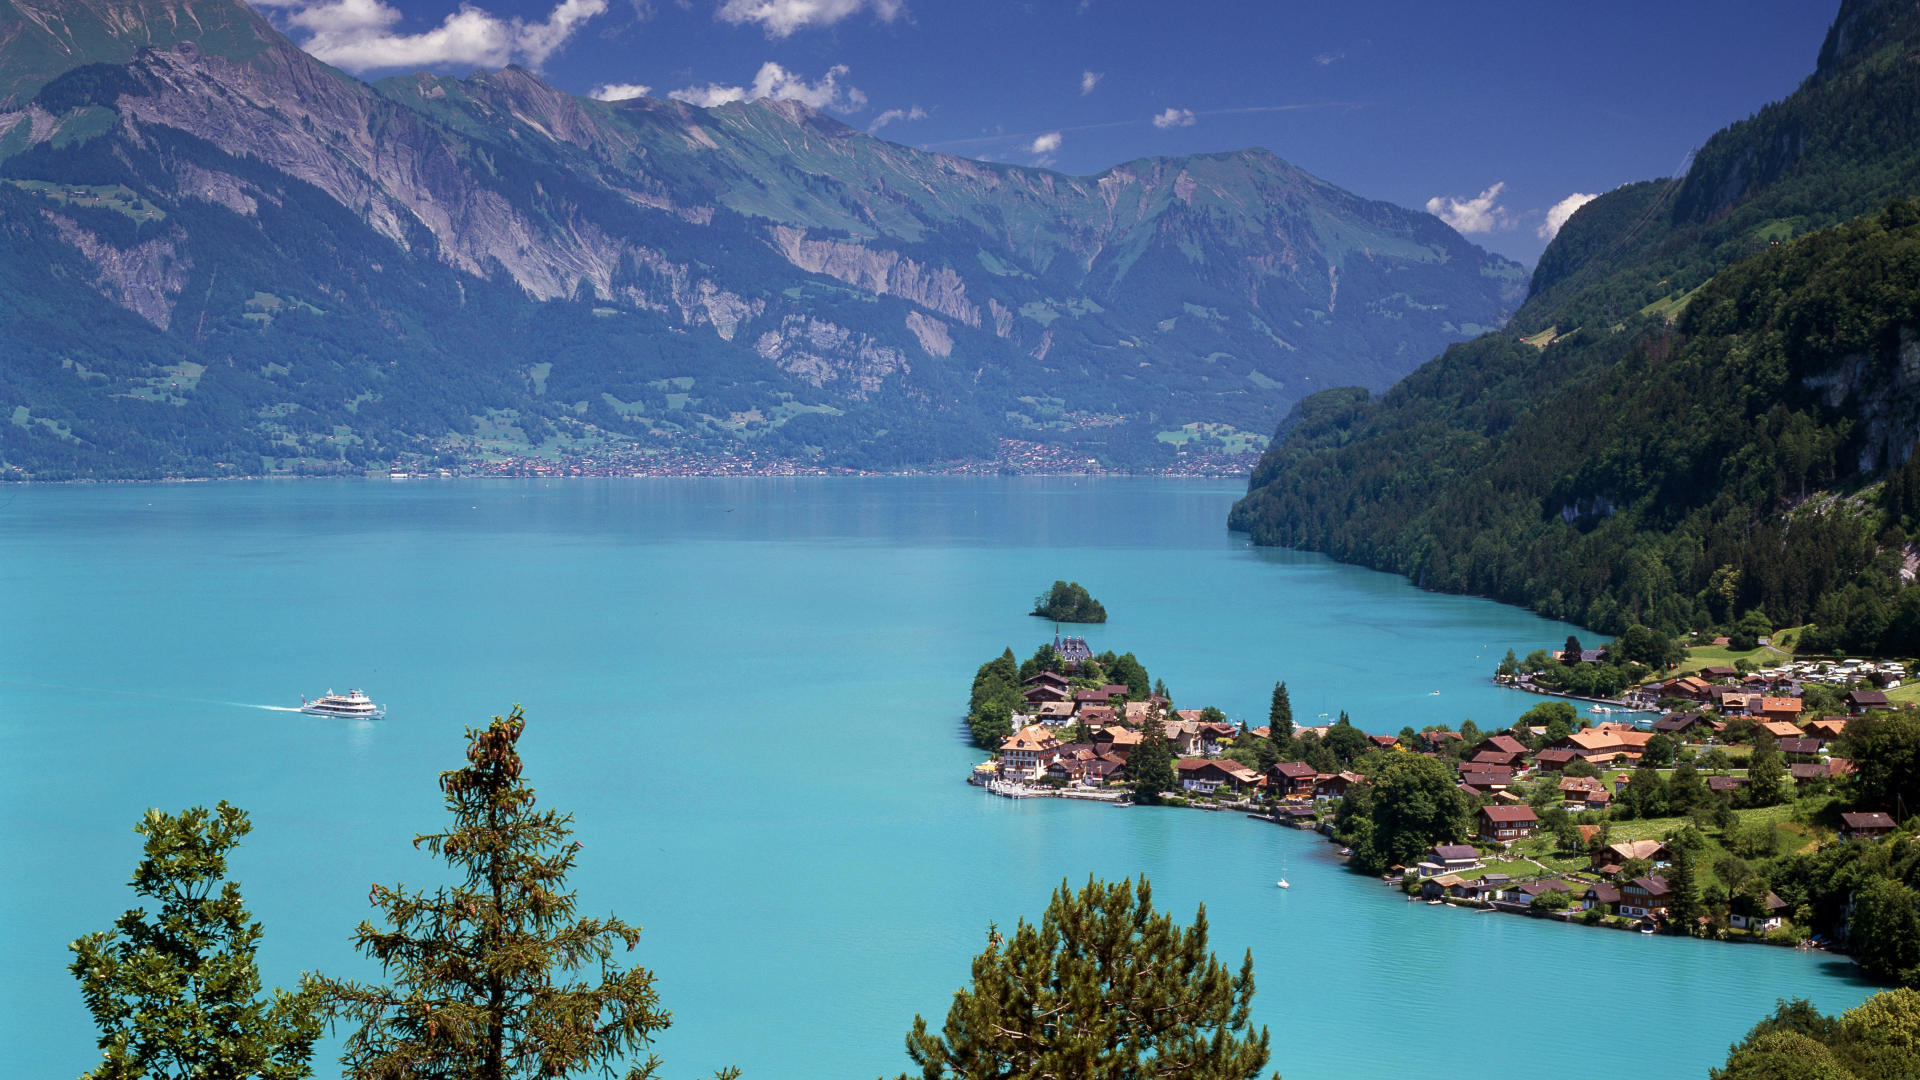 travel-lake-switzerland